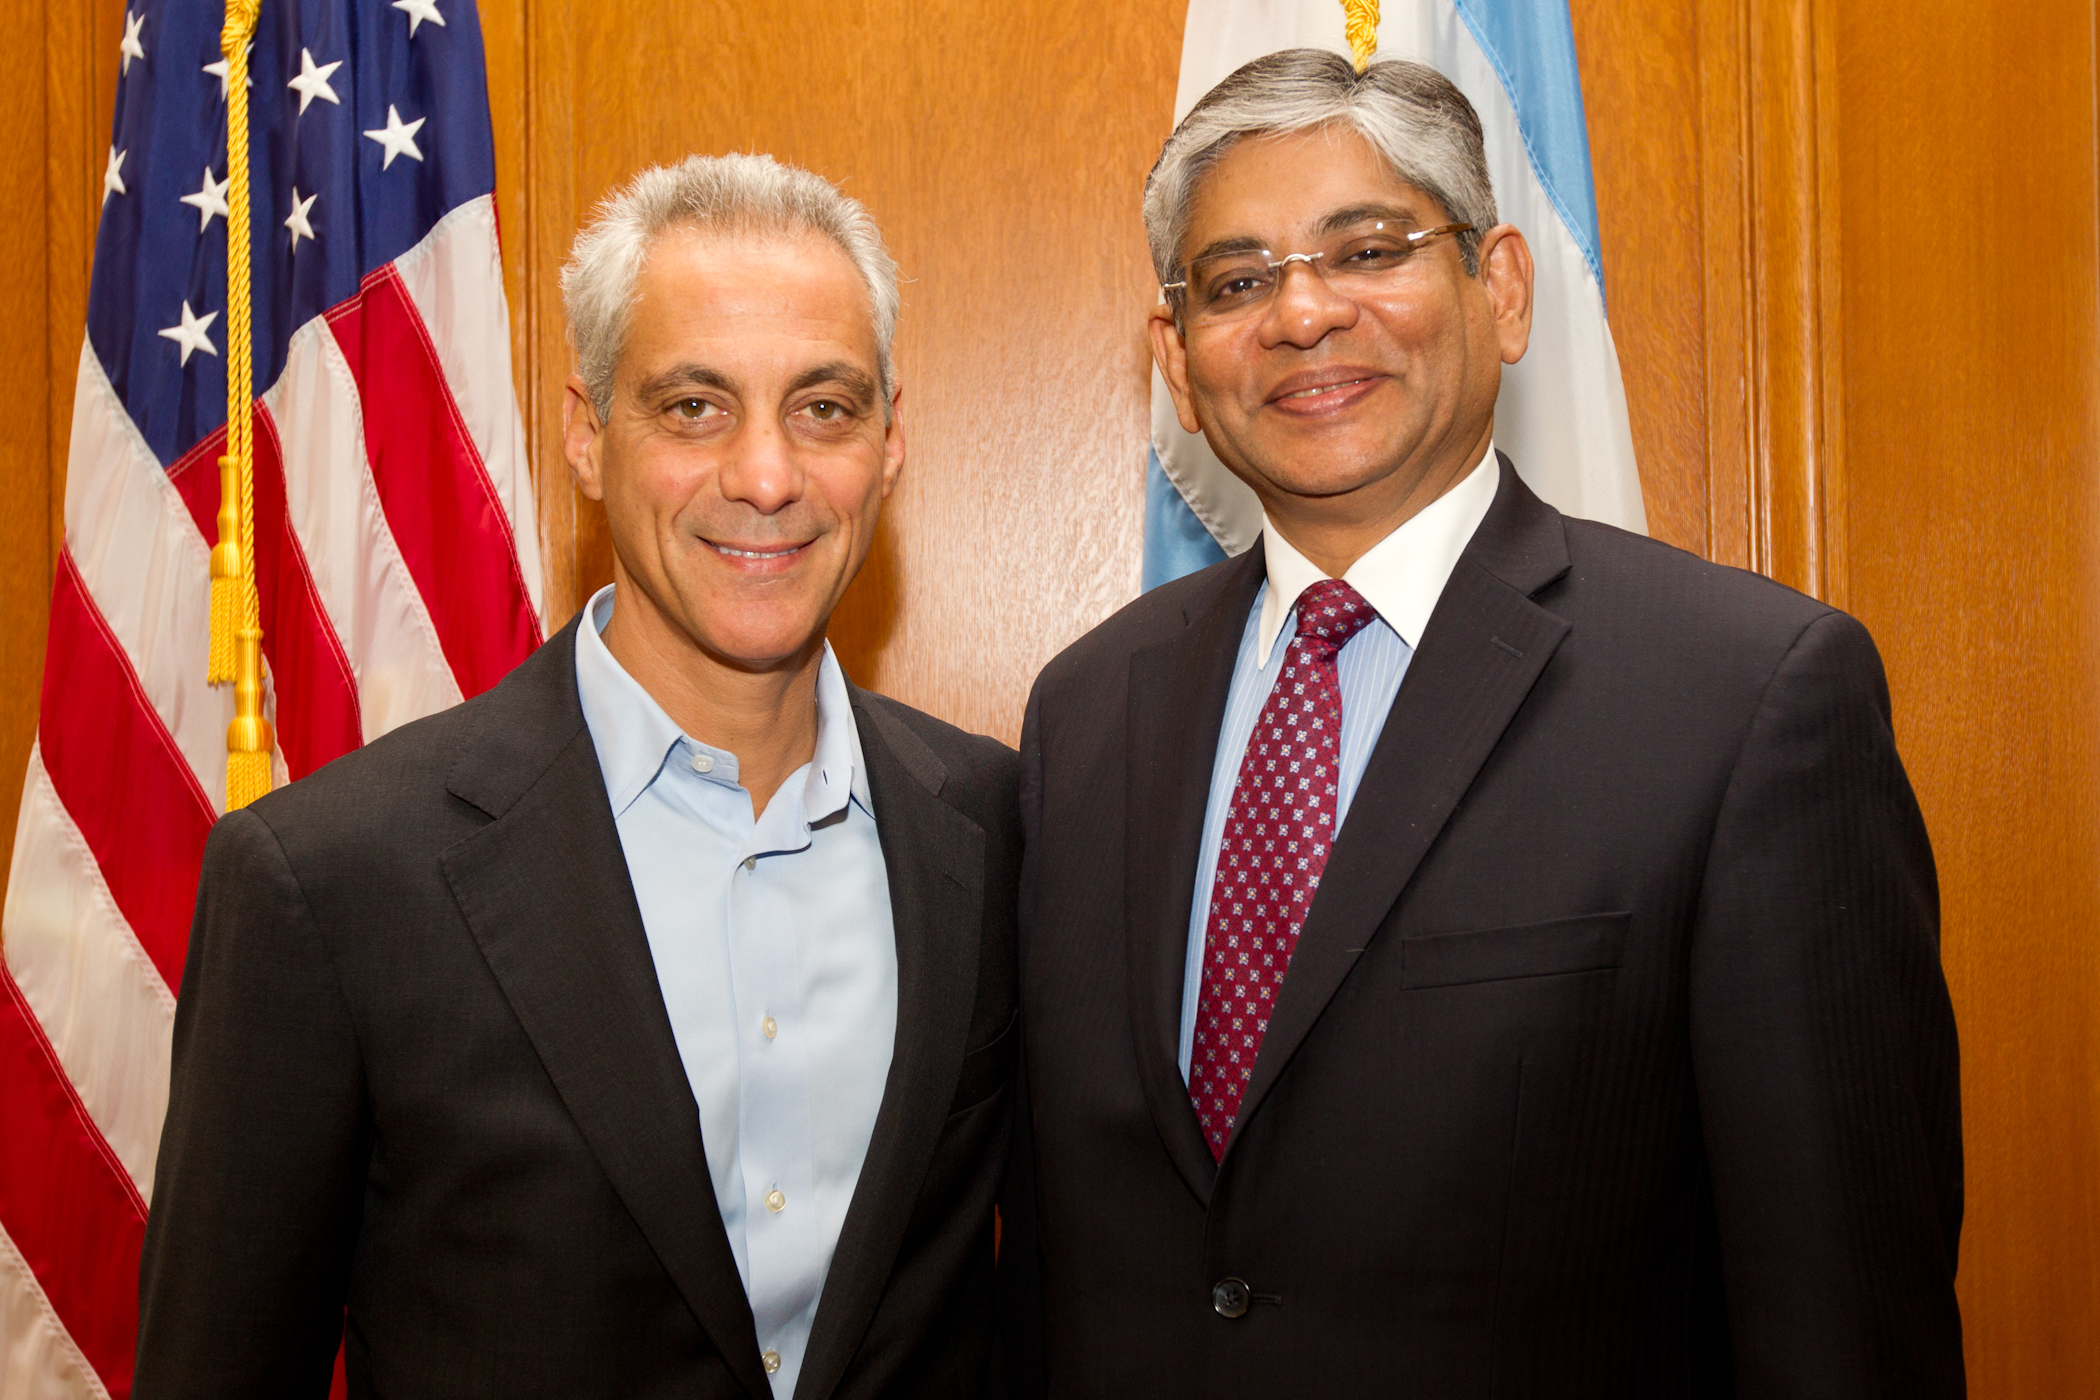 Mayor Emanuel Welcomes The Ambassador Of The Republic Of India, Arun Kumar Singh To Chicago